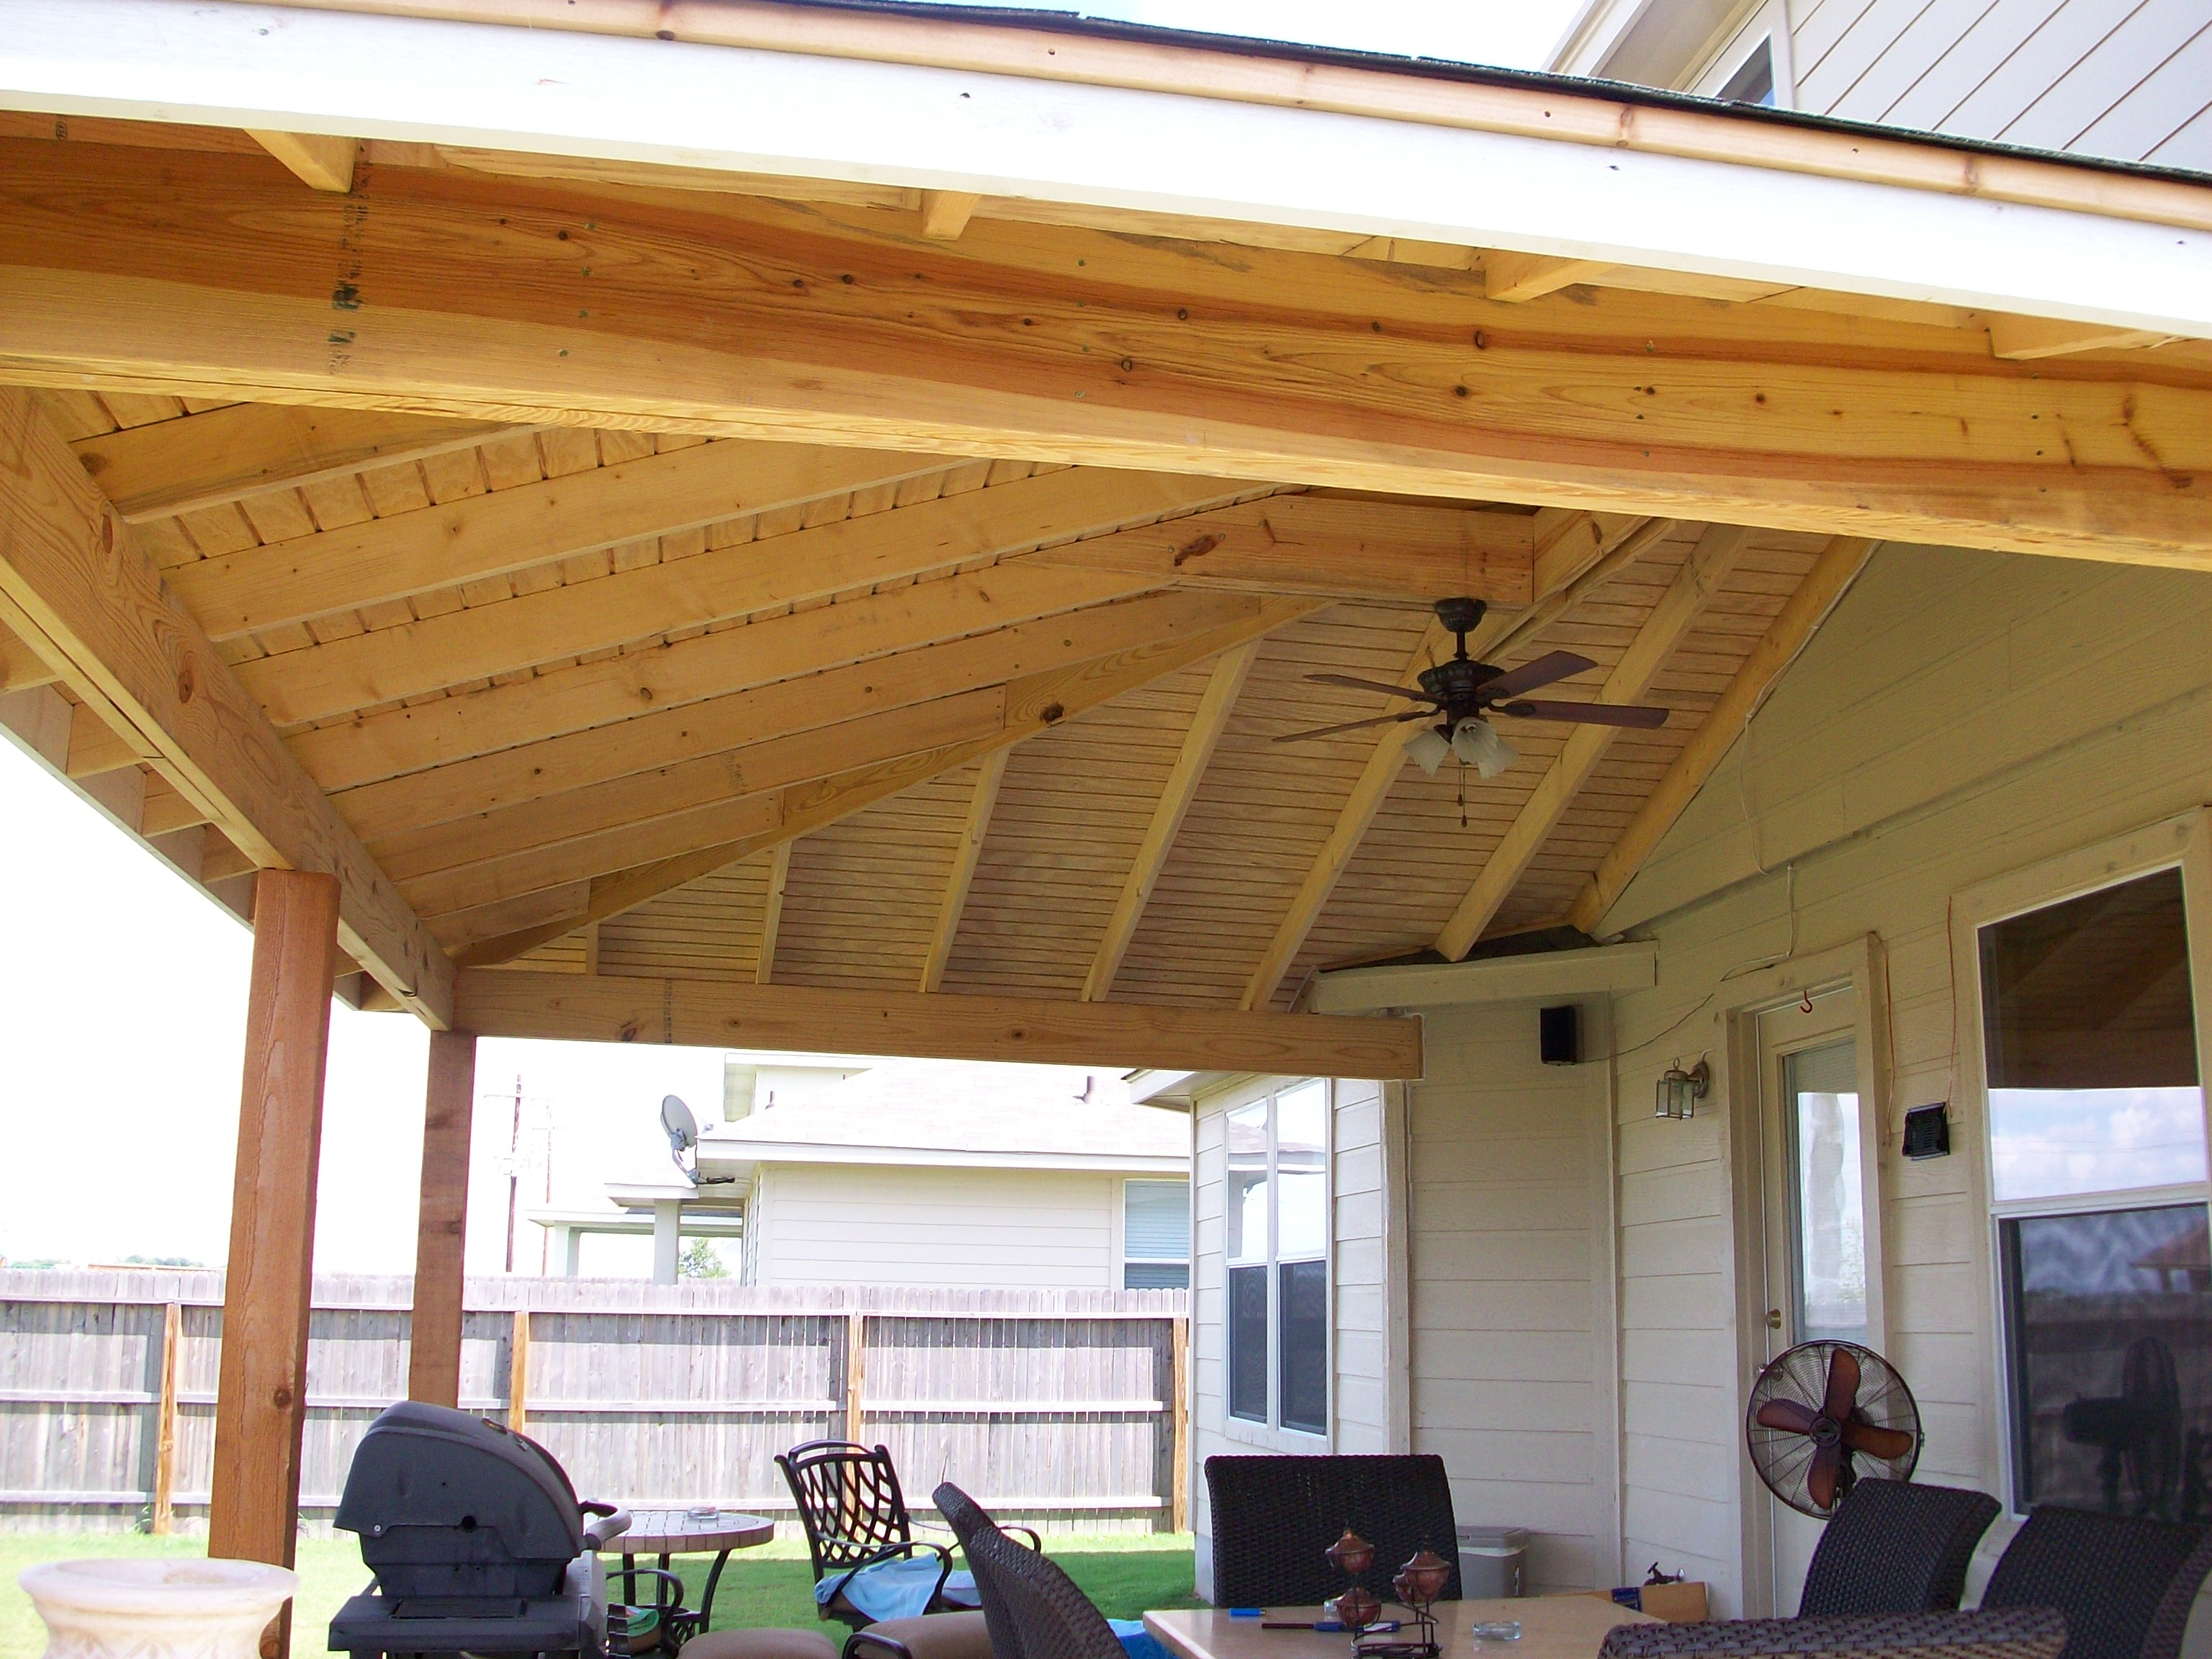 decorative patio cover wooden with fan - Patio Cover Ideas Designs